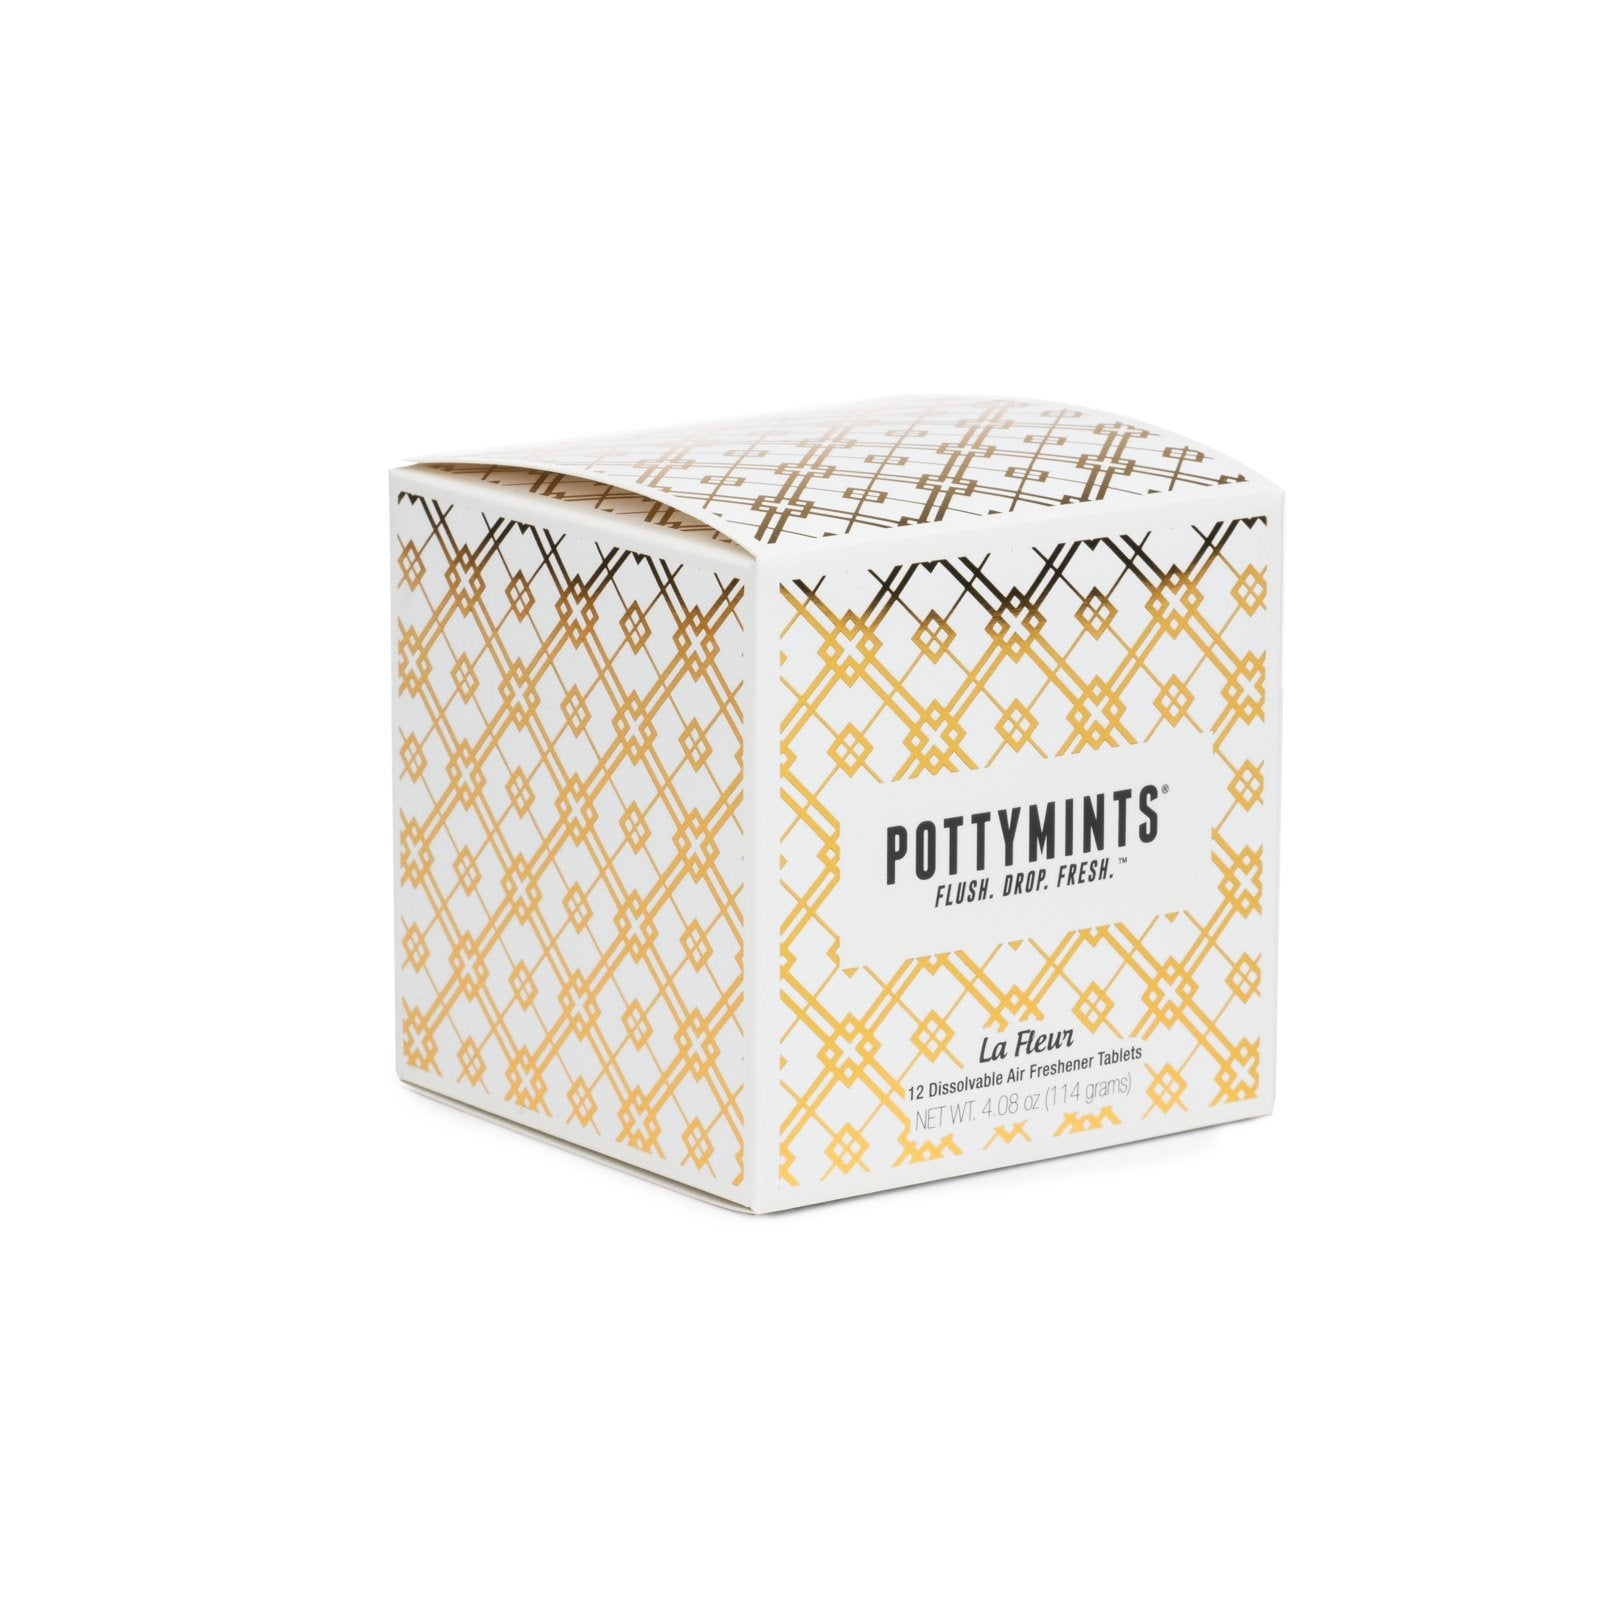 La Fleur Pottymints Gold Box